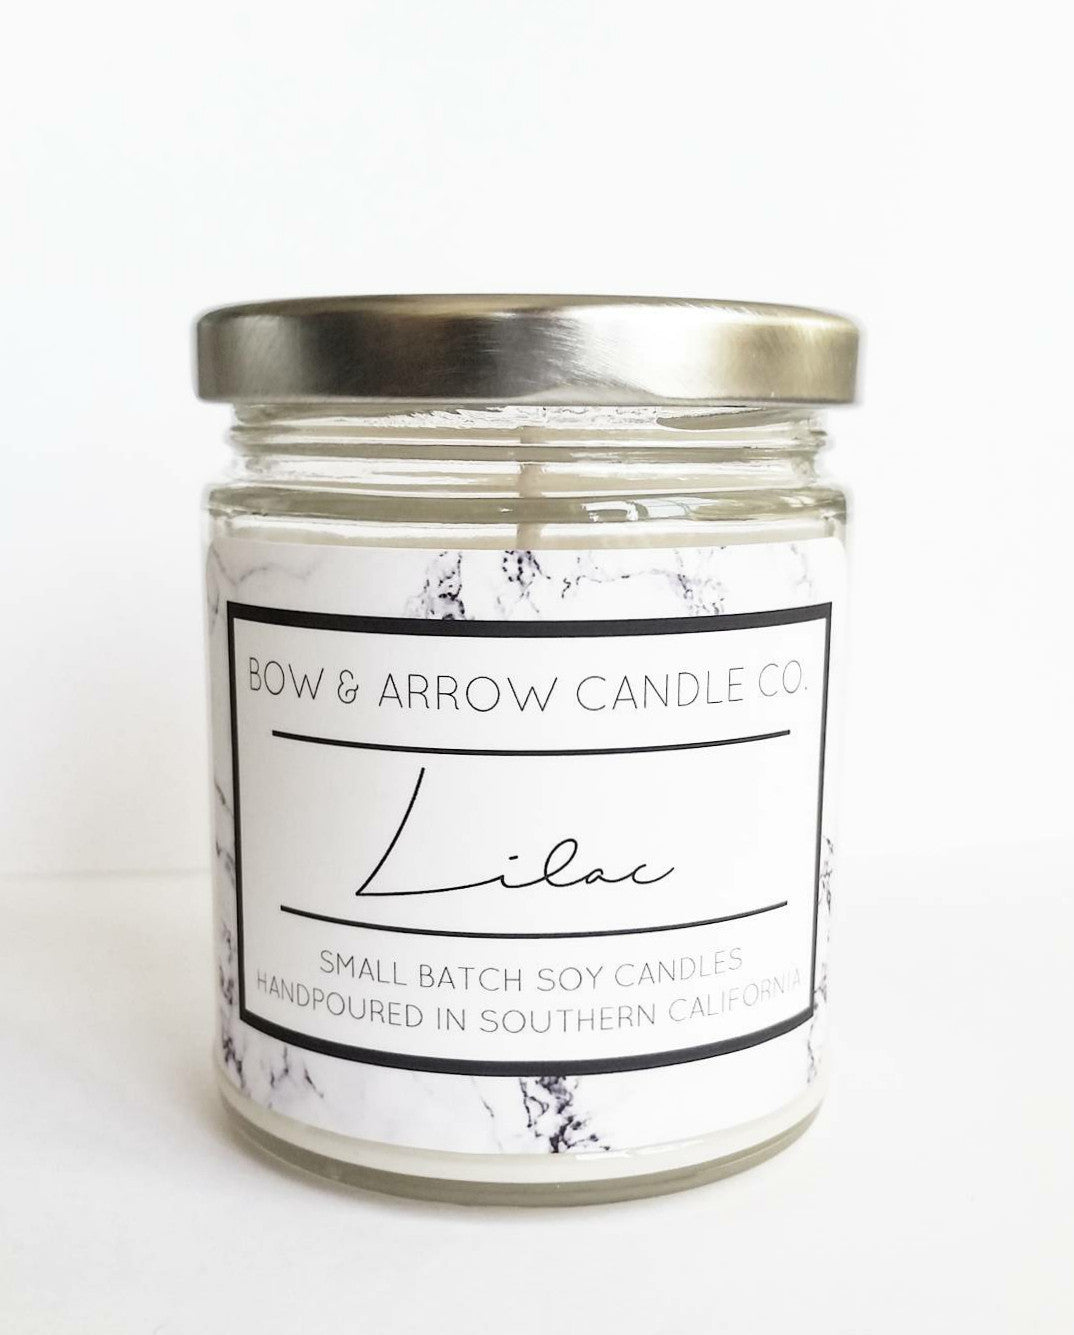 Lilac scented soy wax hand poured candle